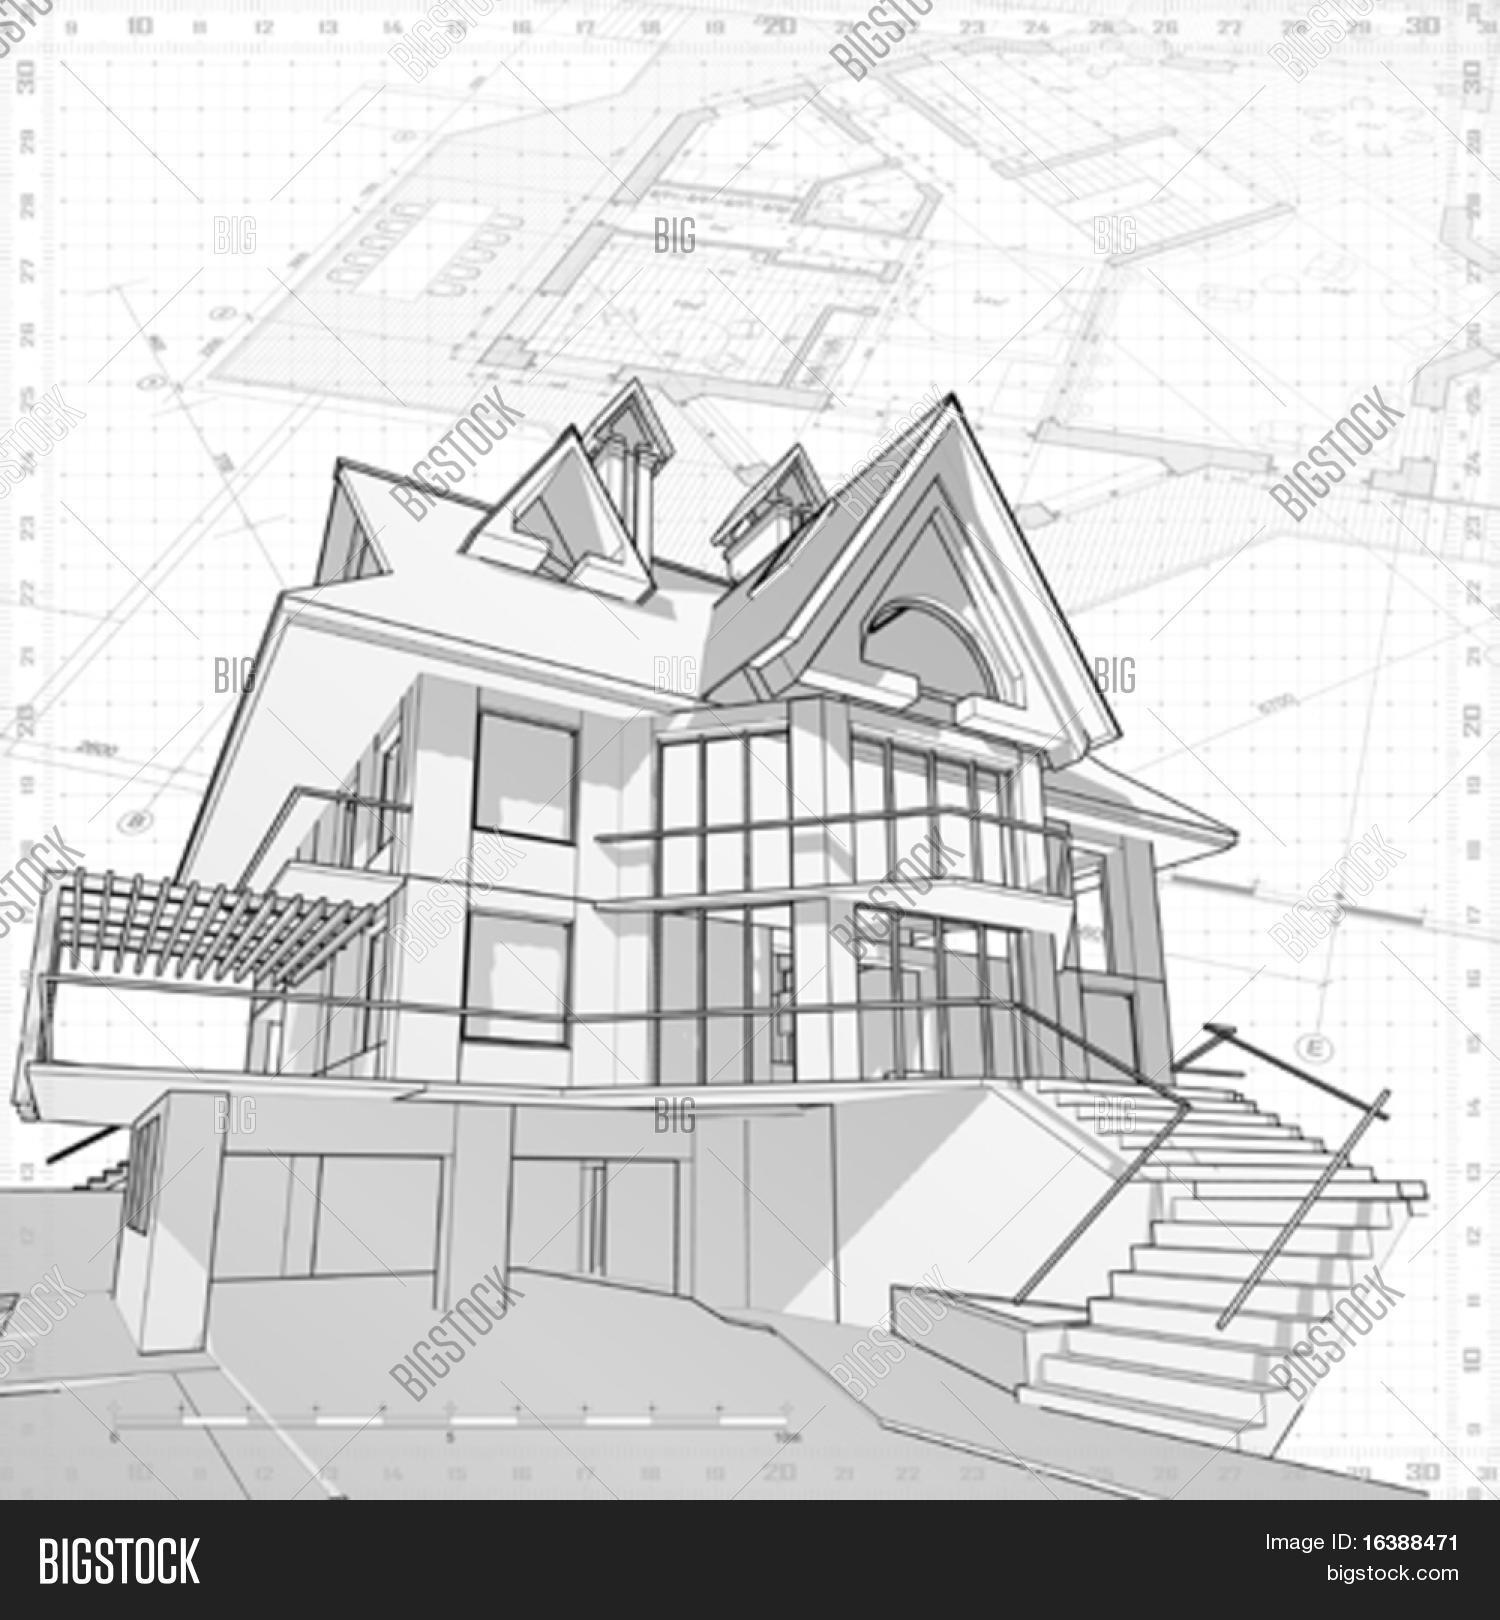 Good 3d House Vector Technical Draw Stock Vector Stock Draw Your House In 3d